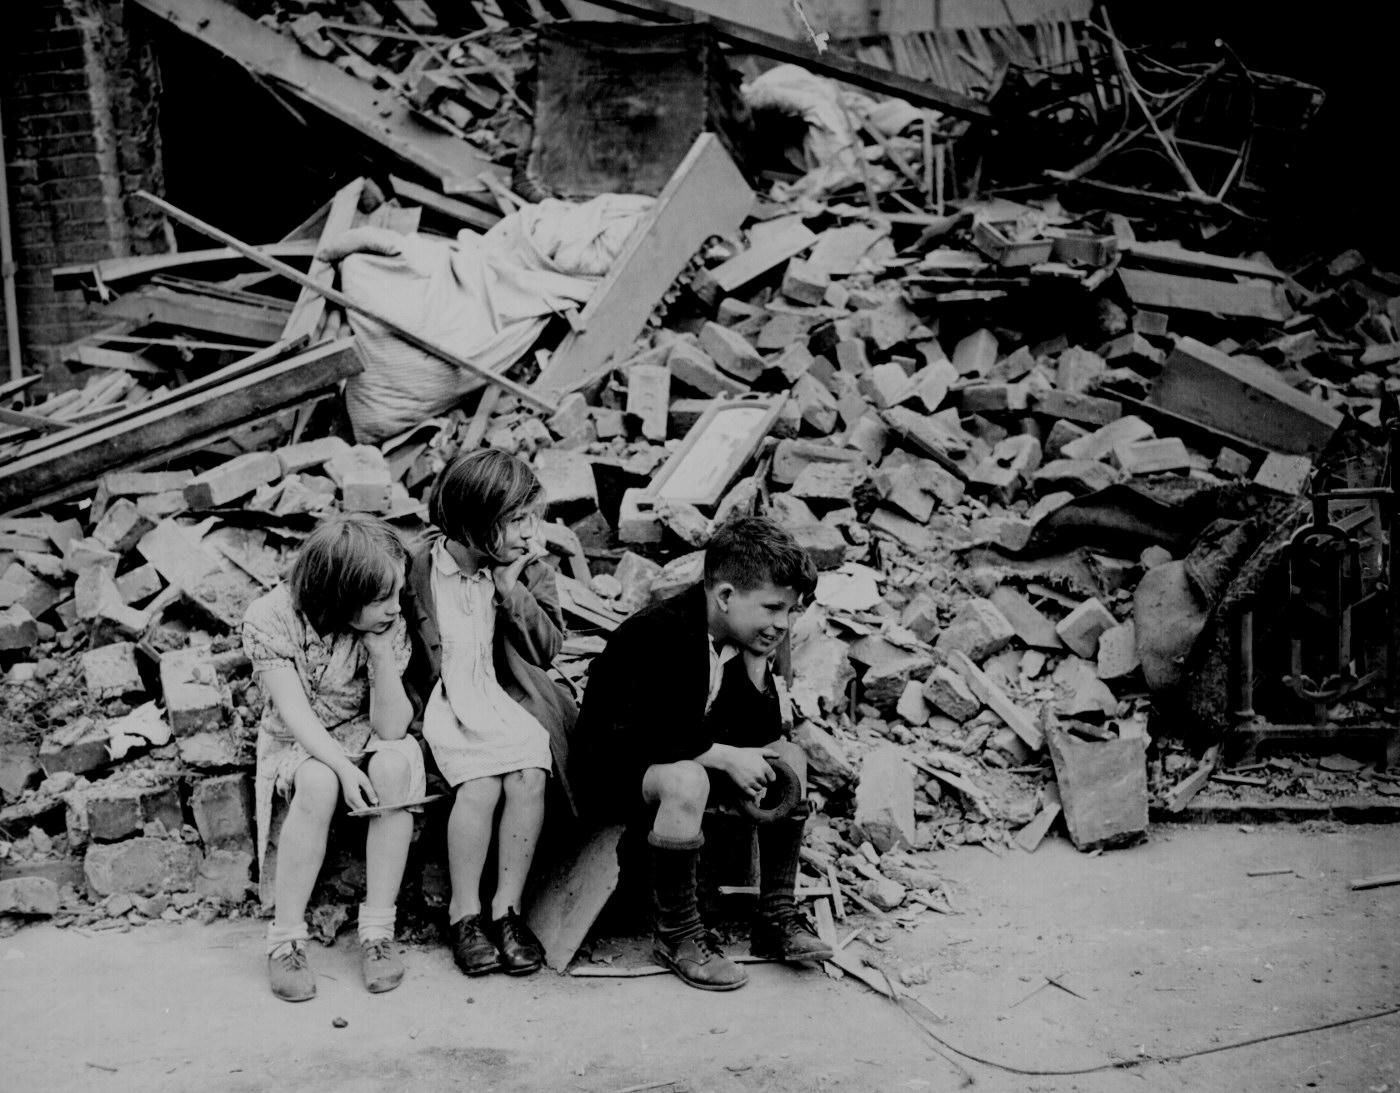 Children in an Eastern suburb of London whose home has been bombed.  Sept 1940